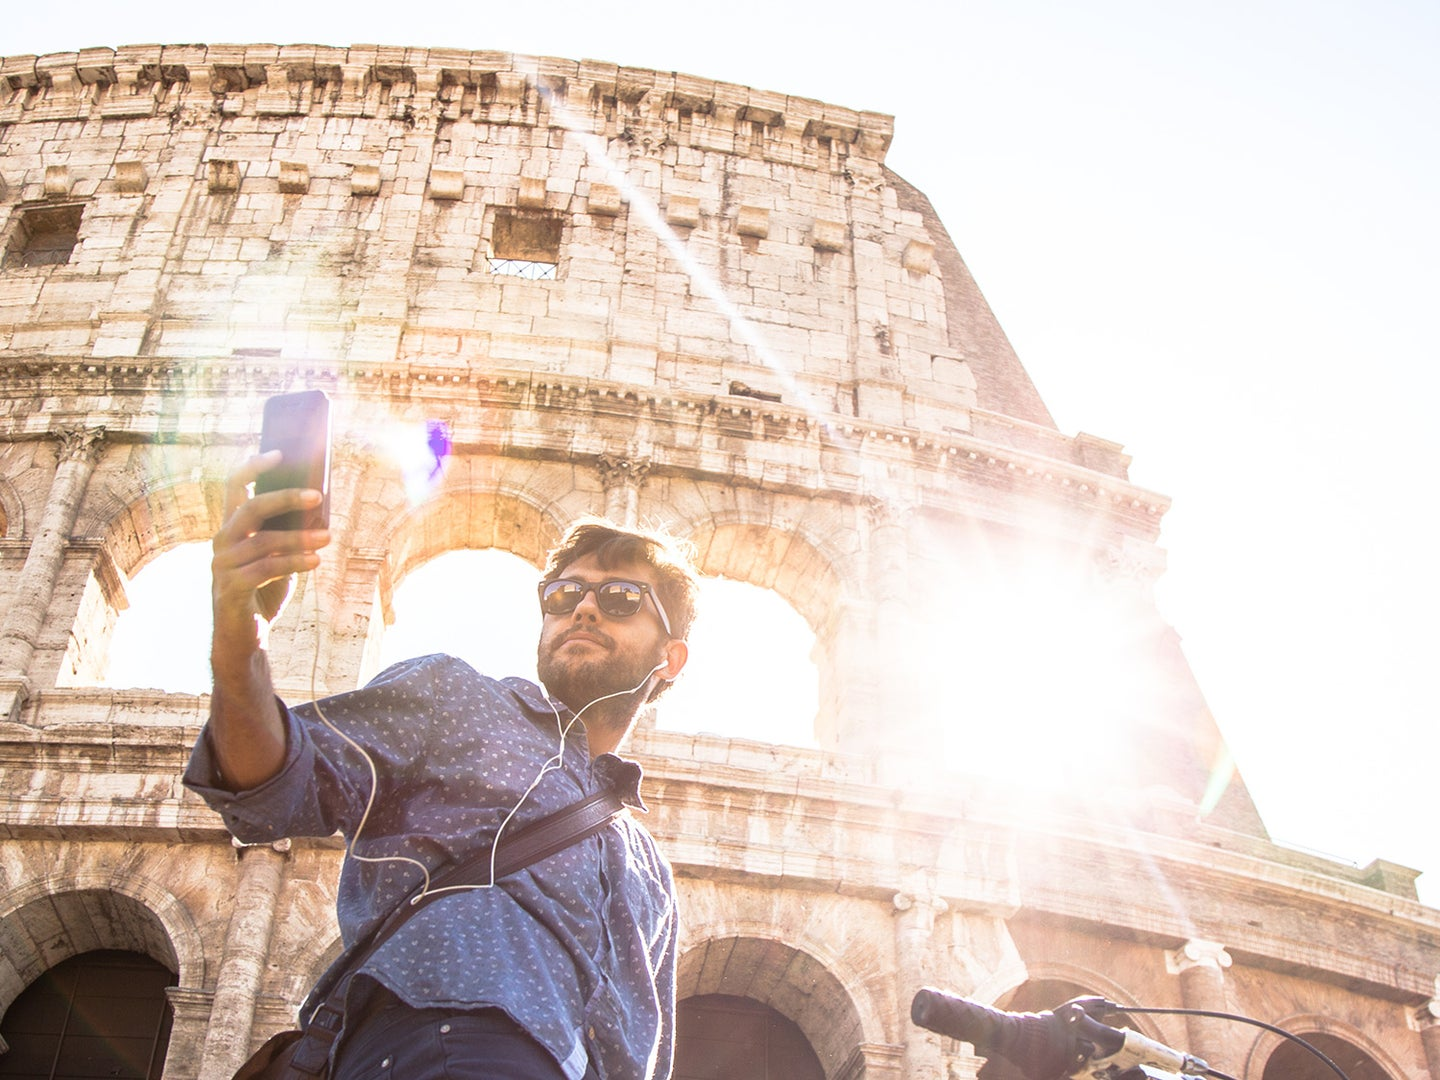 man snapping selfie in front of the Colisseum